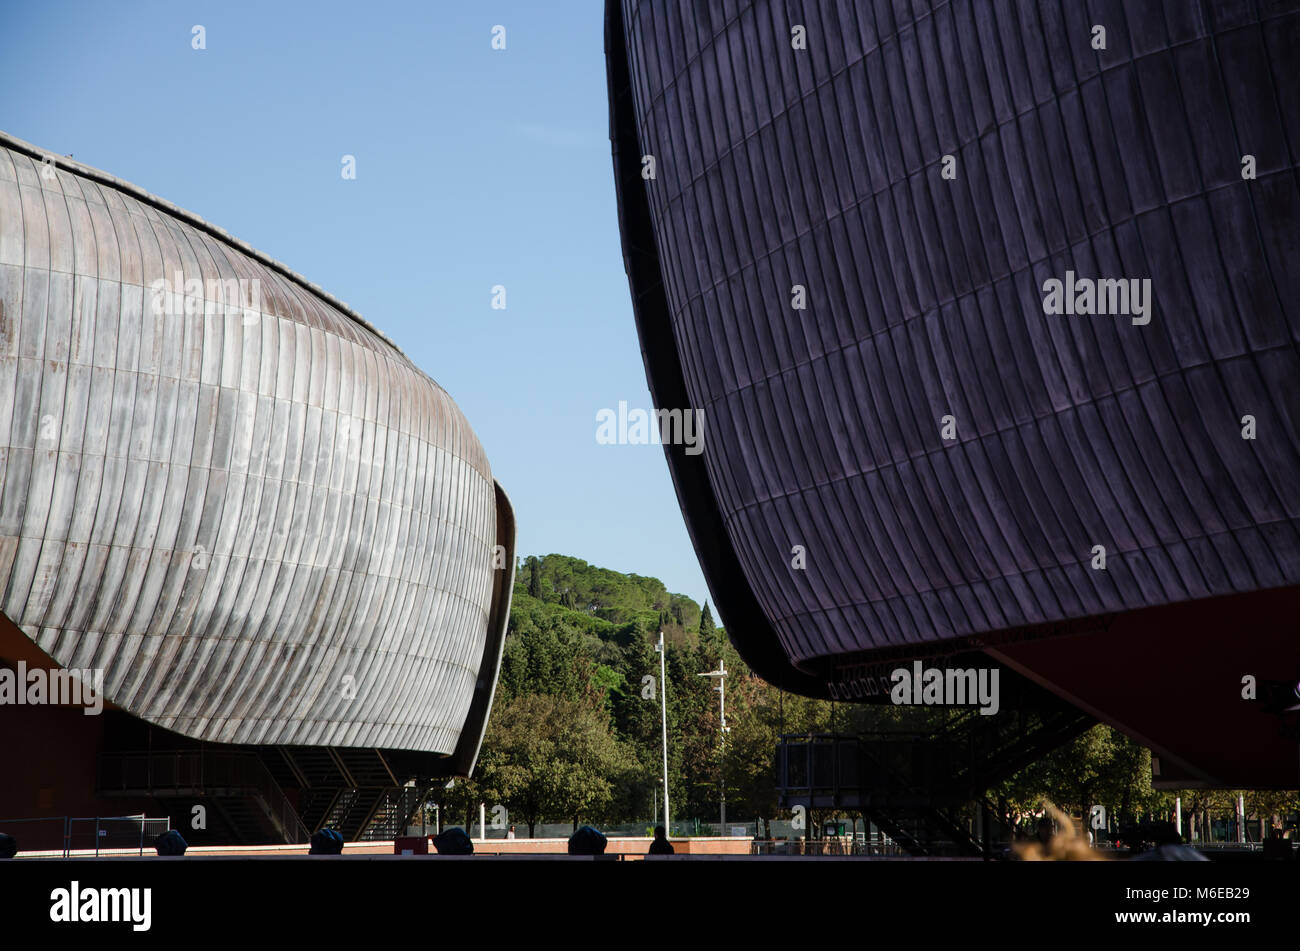 Rome, Italy. 01 November, 2017. Auditorium Parco della Musica, designed by architect Renzo Piano. View of the external Stock Photo